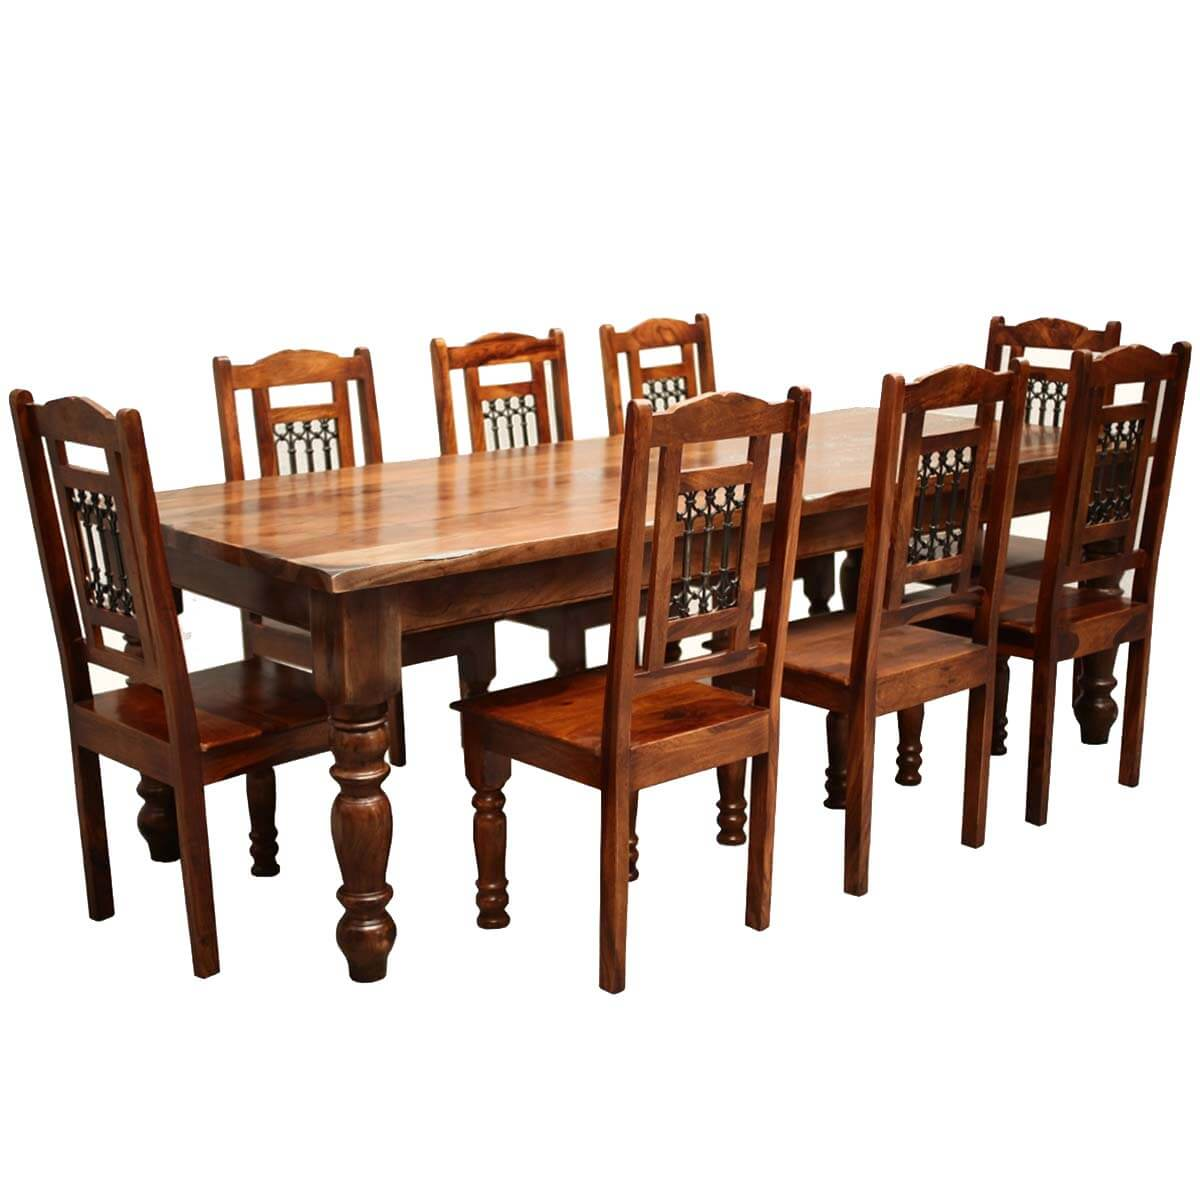 Rustic furniture solid wood large dining table 8 chair set for Dining table and 8 chairs